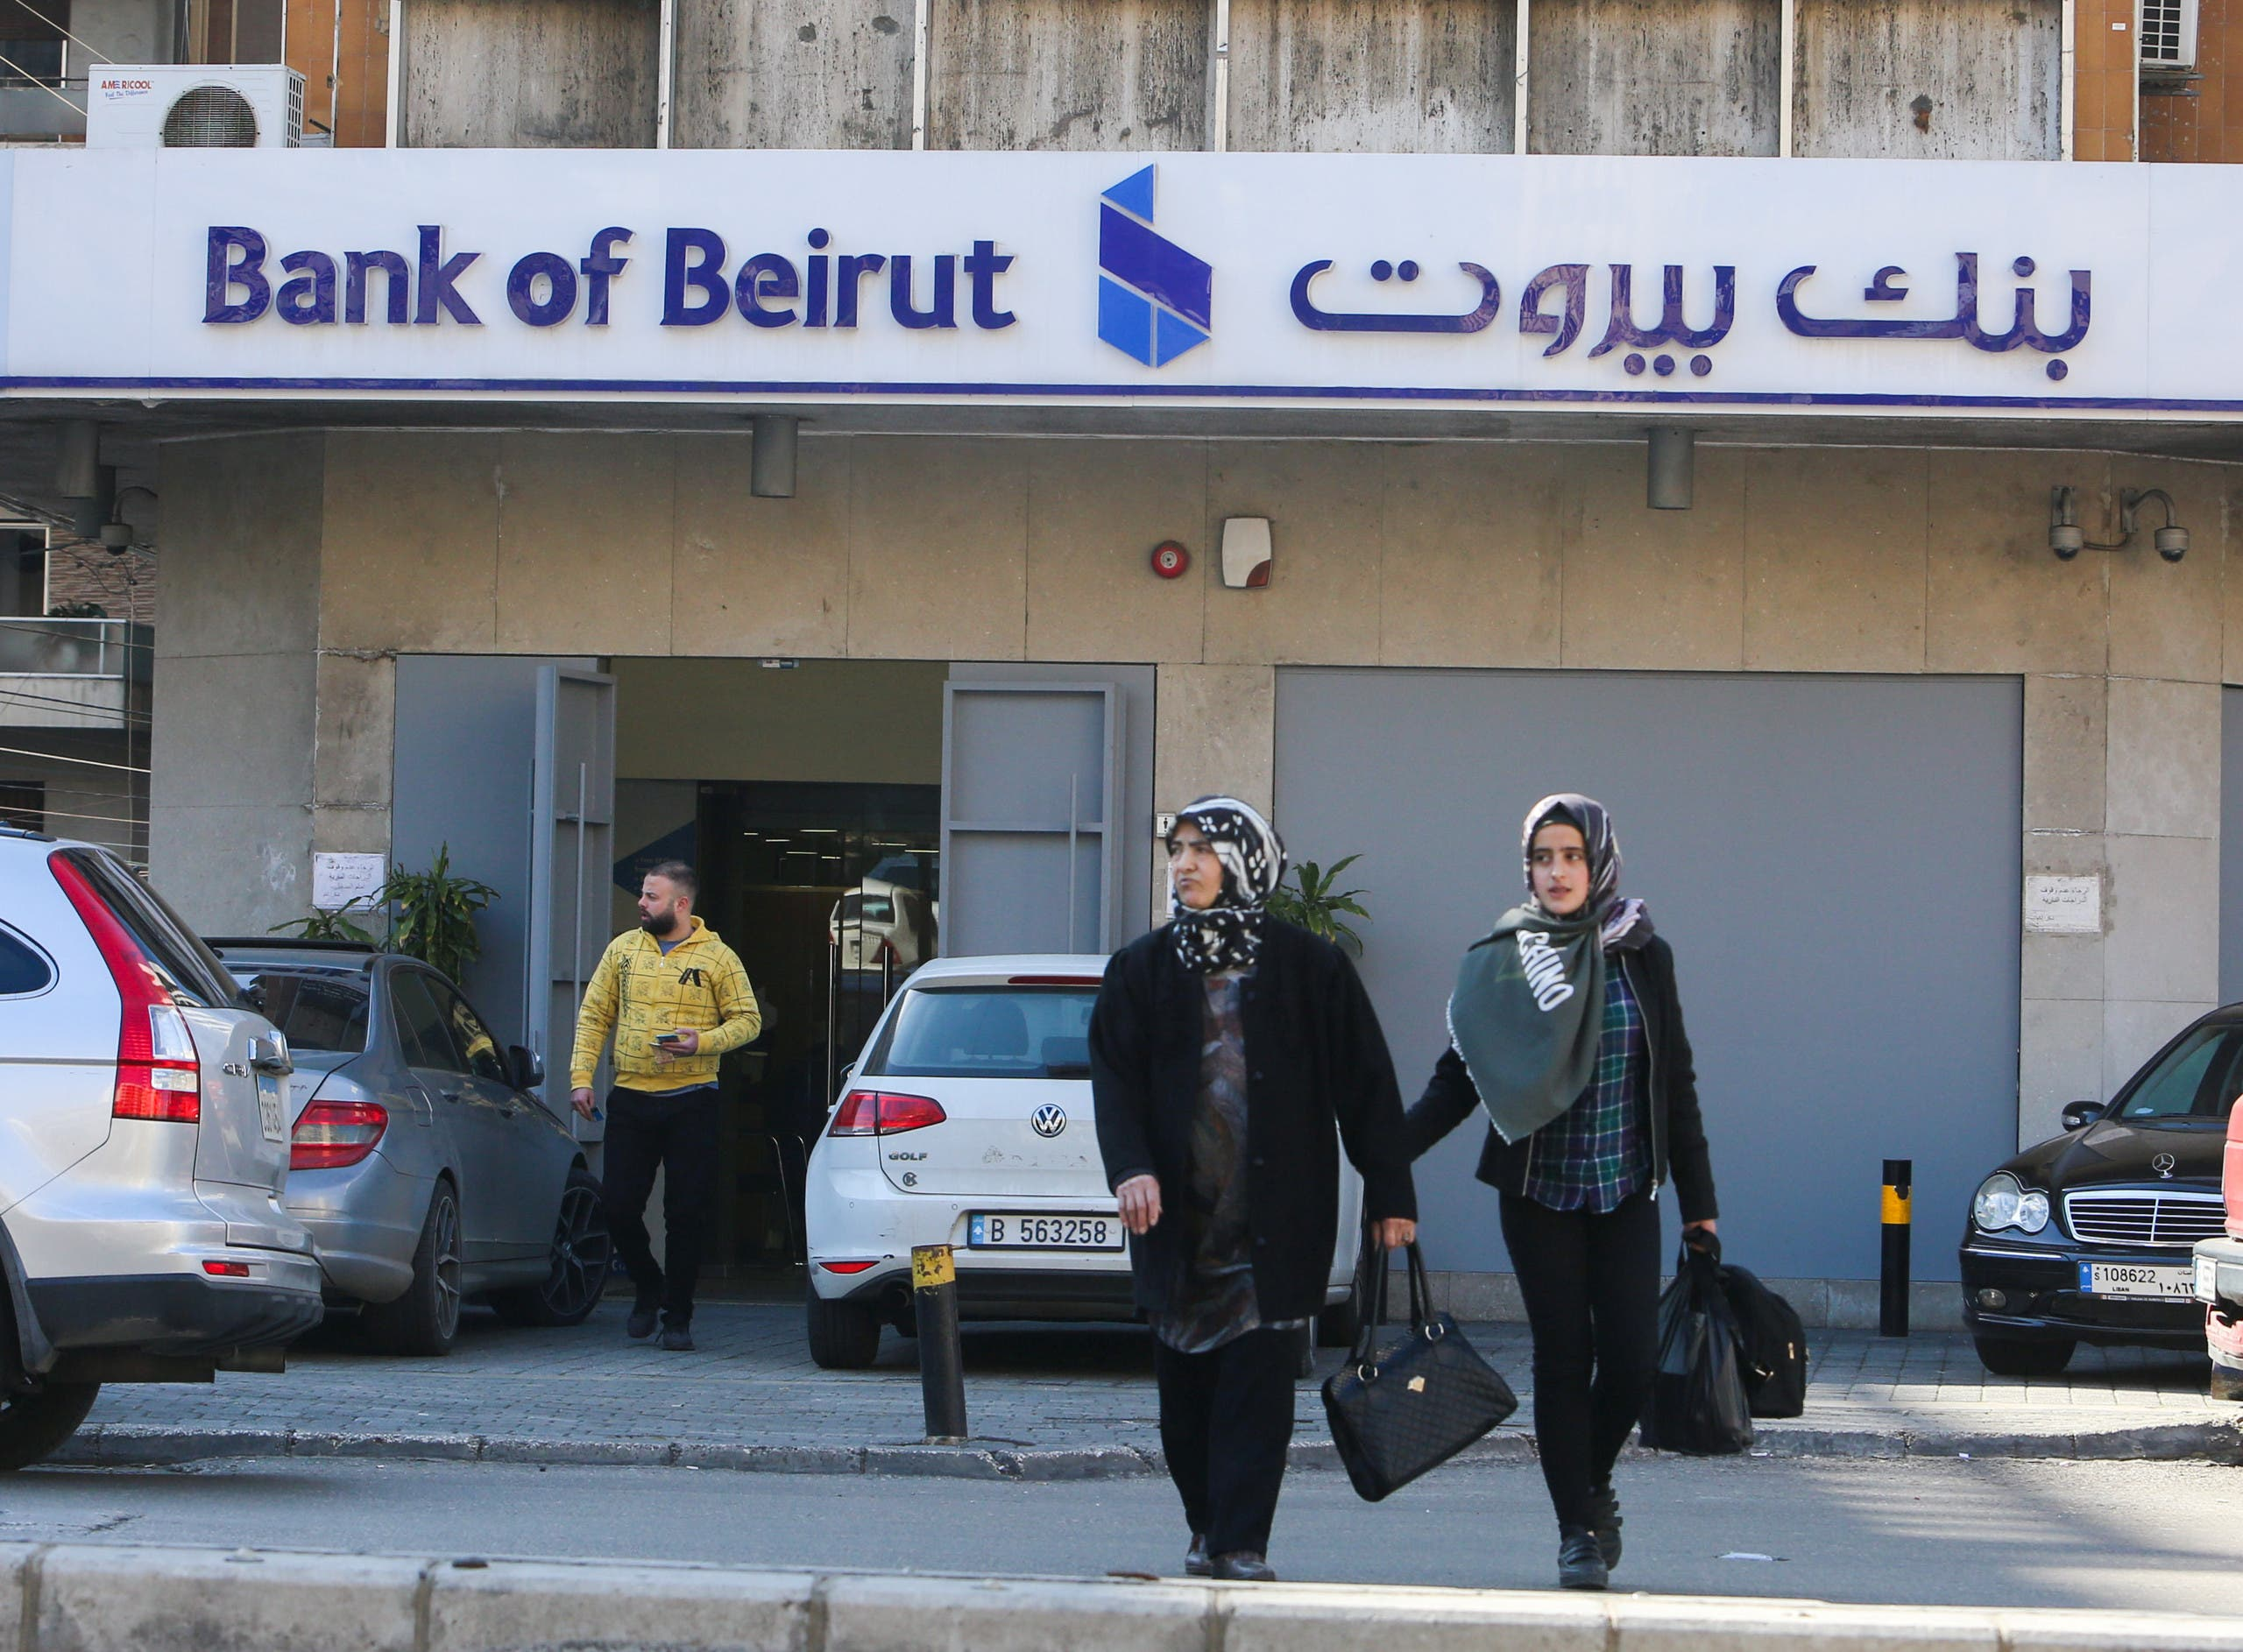 Women walk near a branch of Bank of Beirut, in Beirut, Lebanon, March 2, 2020. Picture taken March 2, 2020. (Reuters)